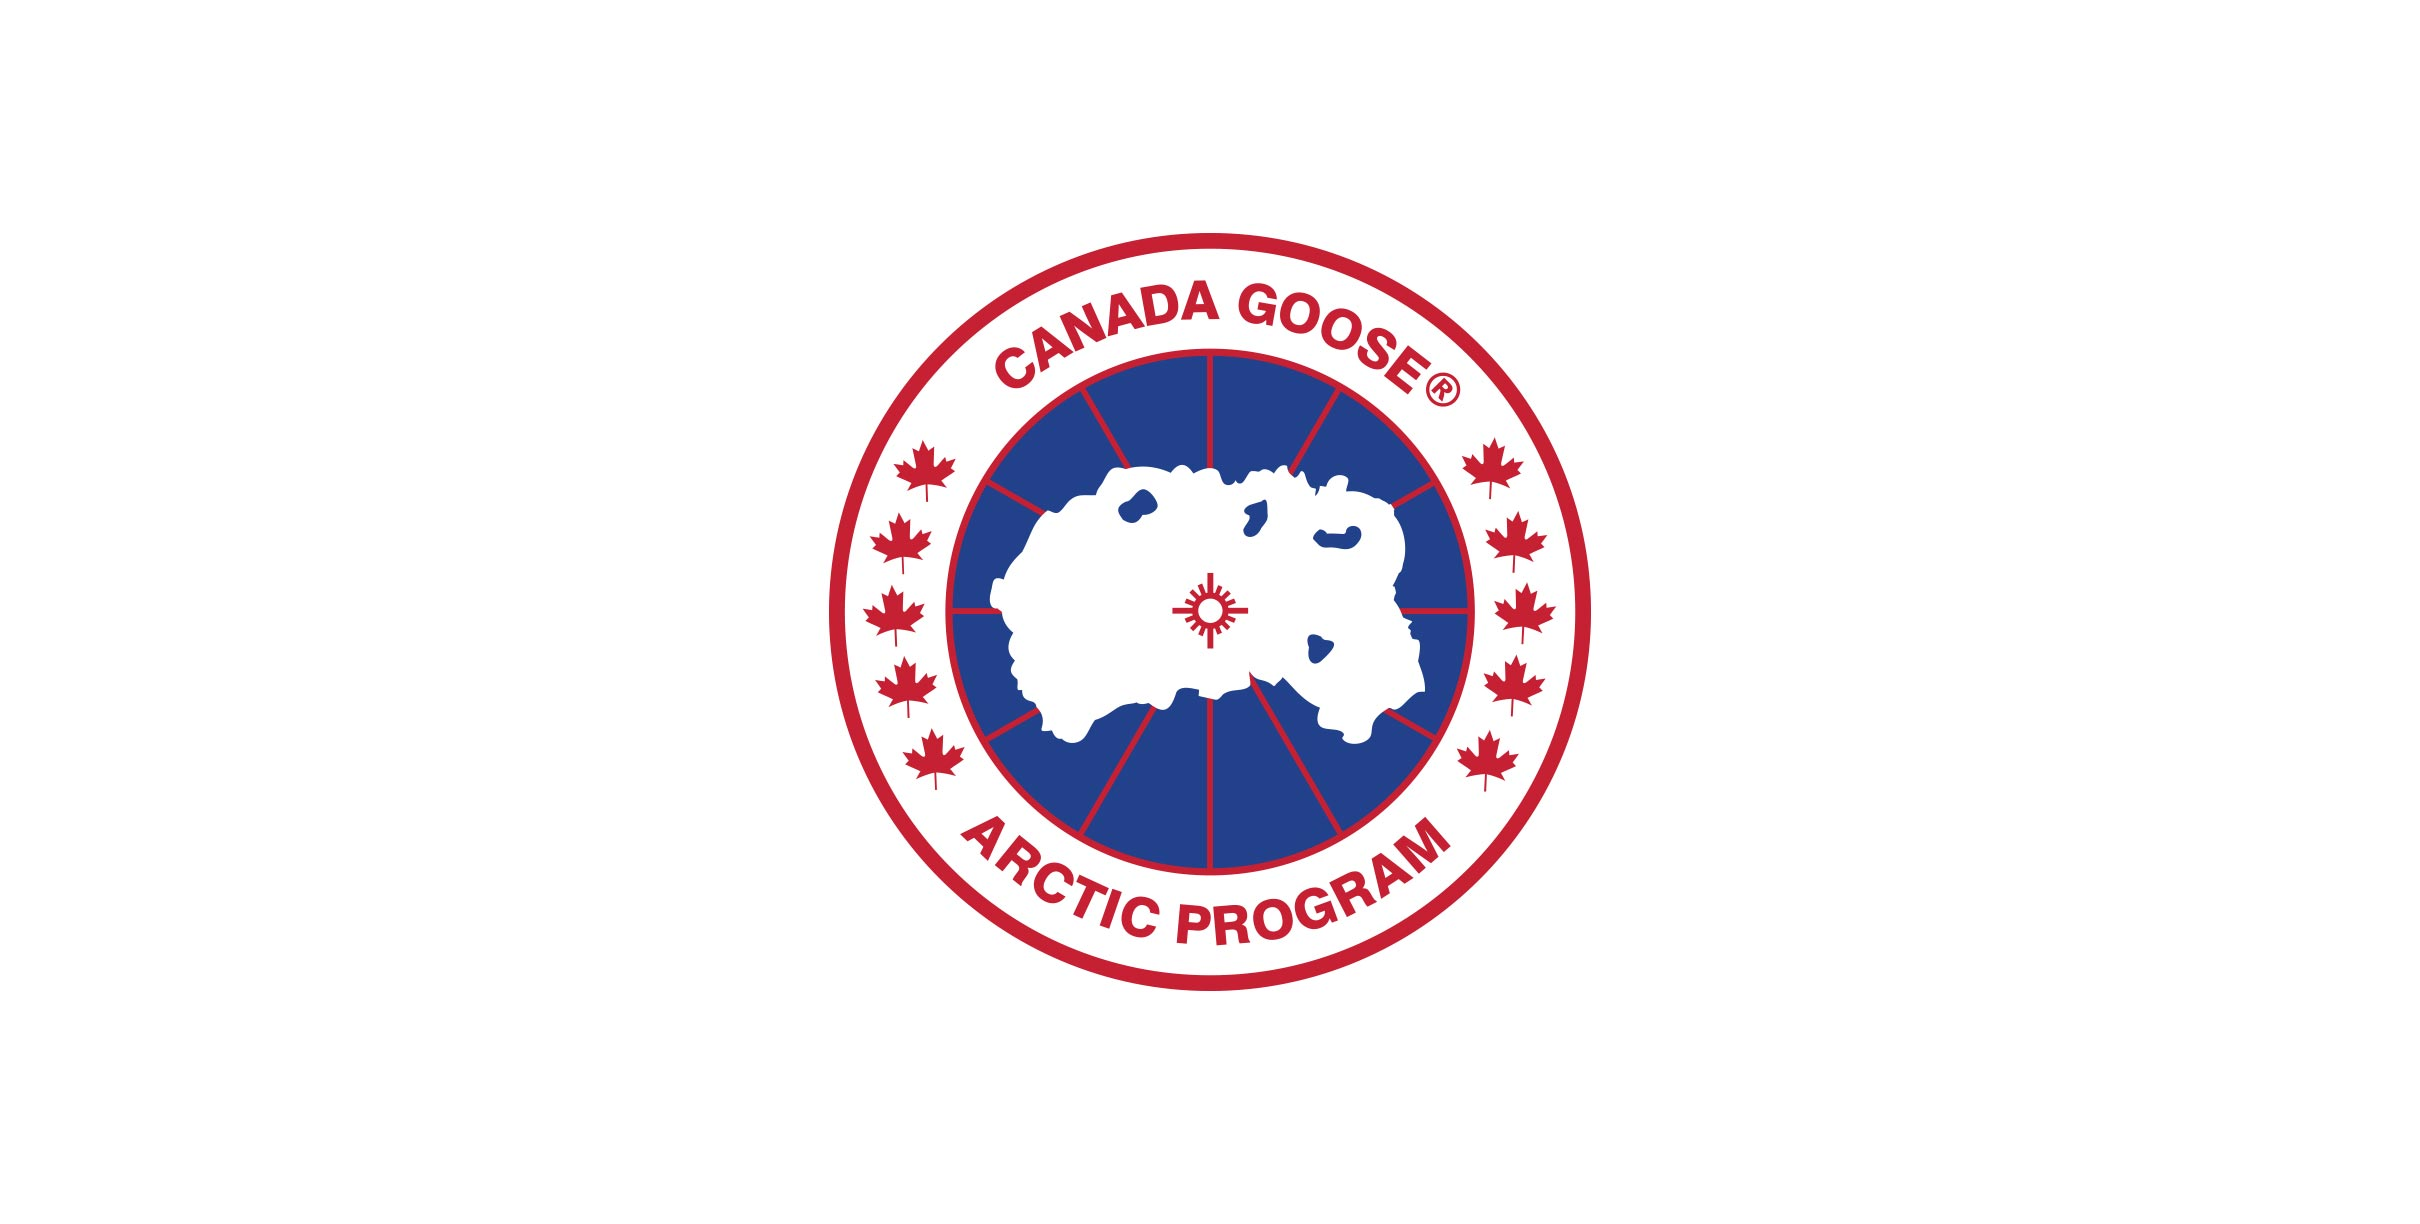 canada goose logo meaning